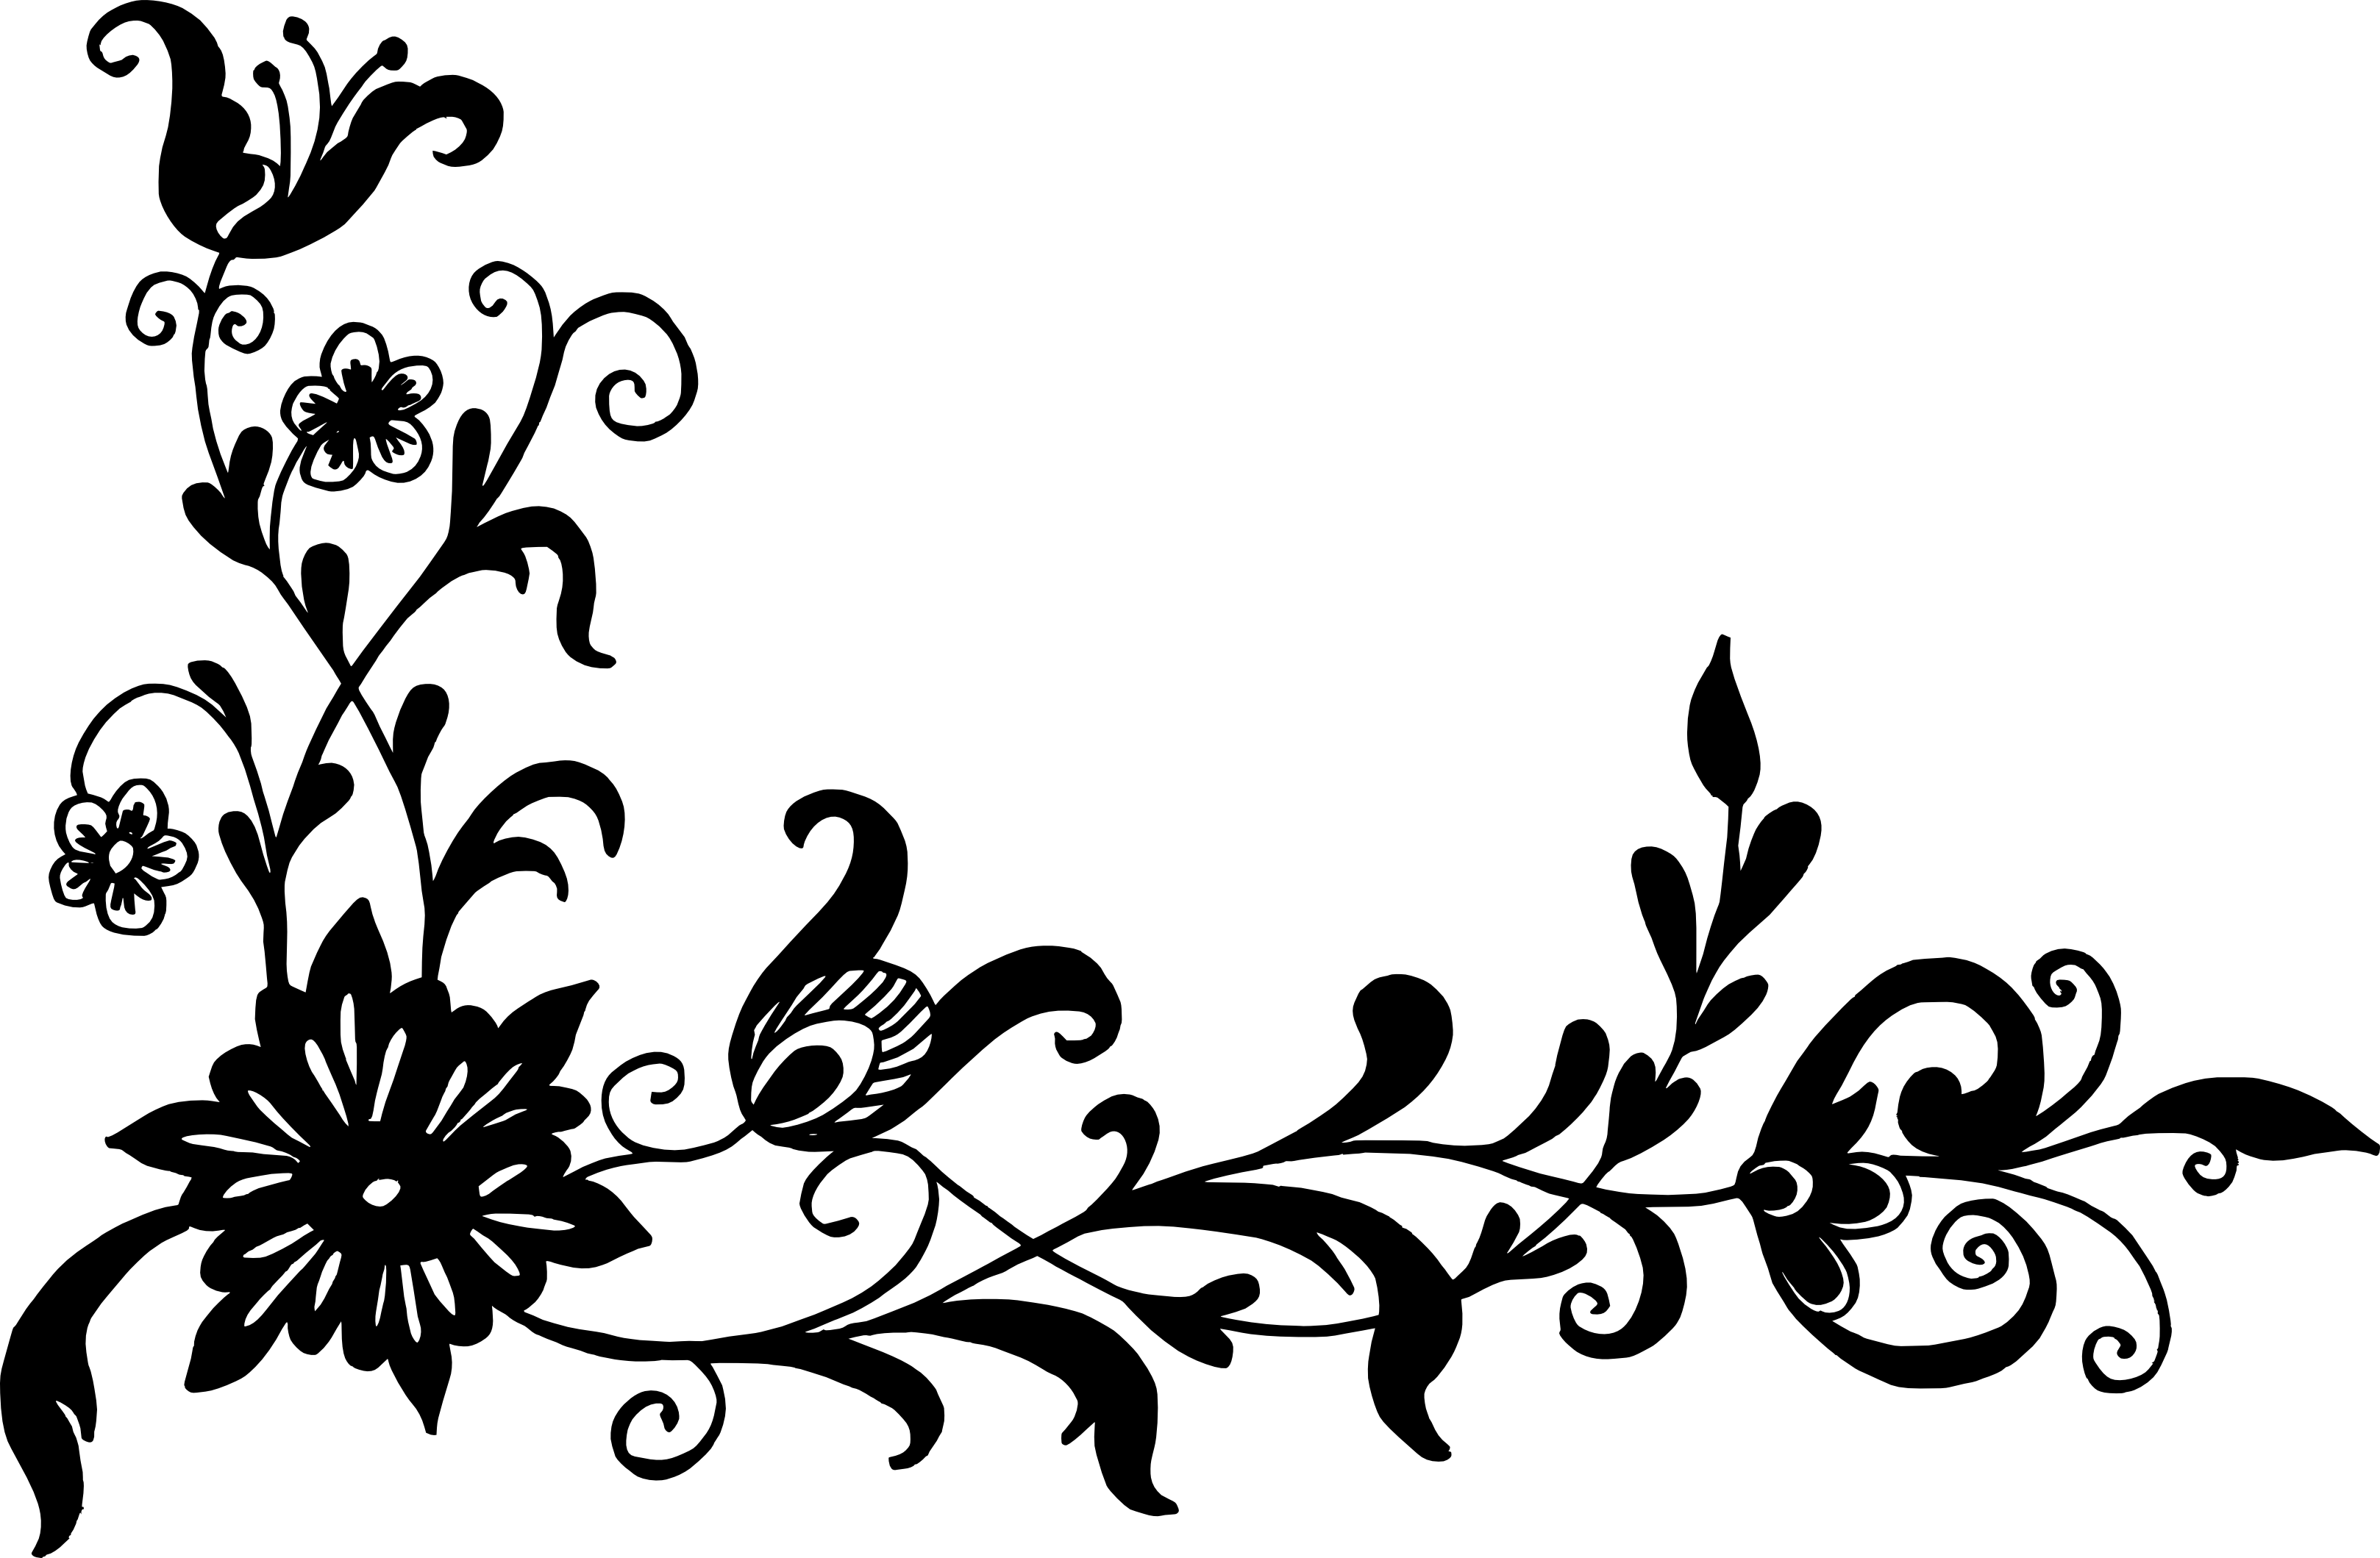 corner vector transparent. Flower pattern png